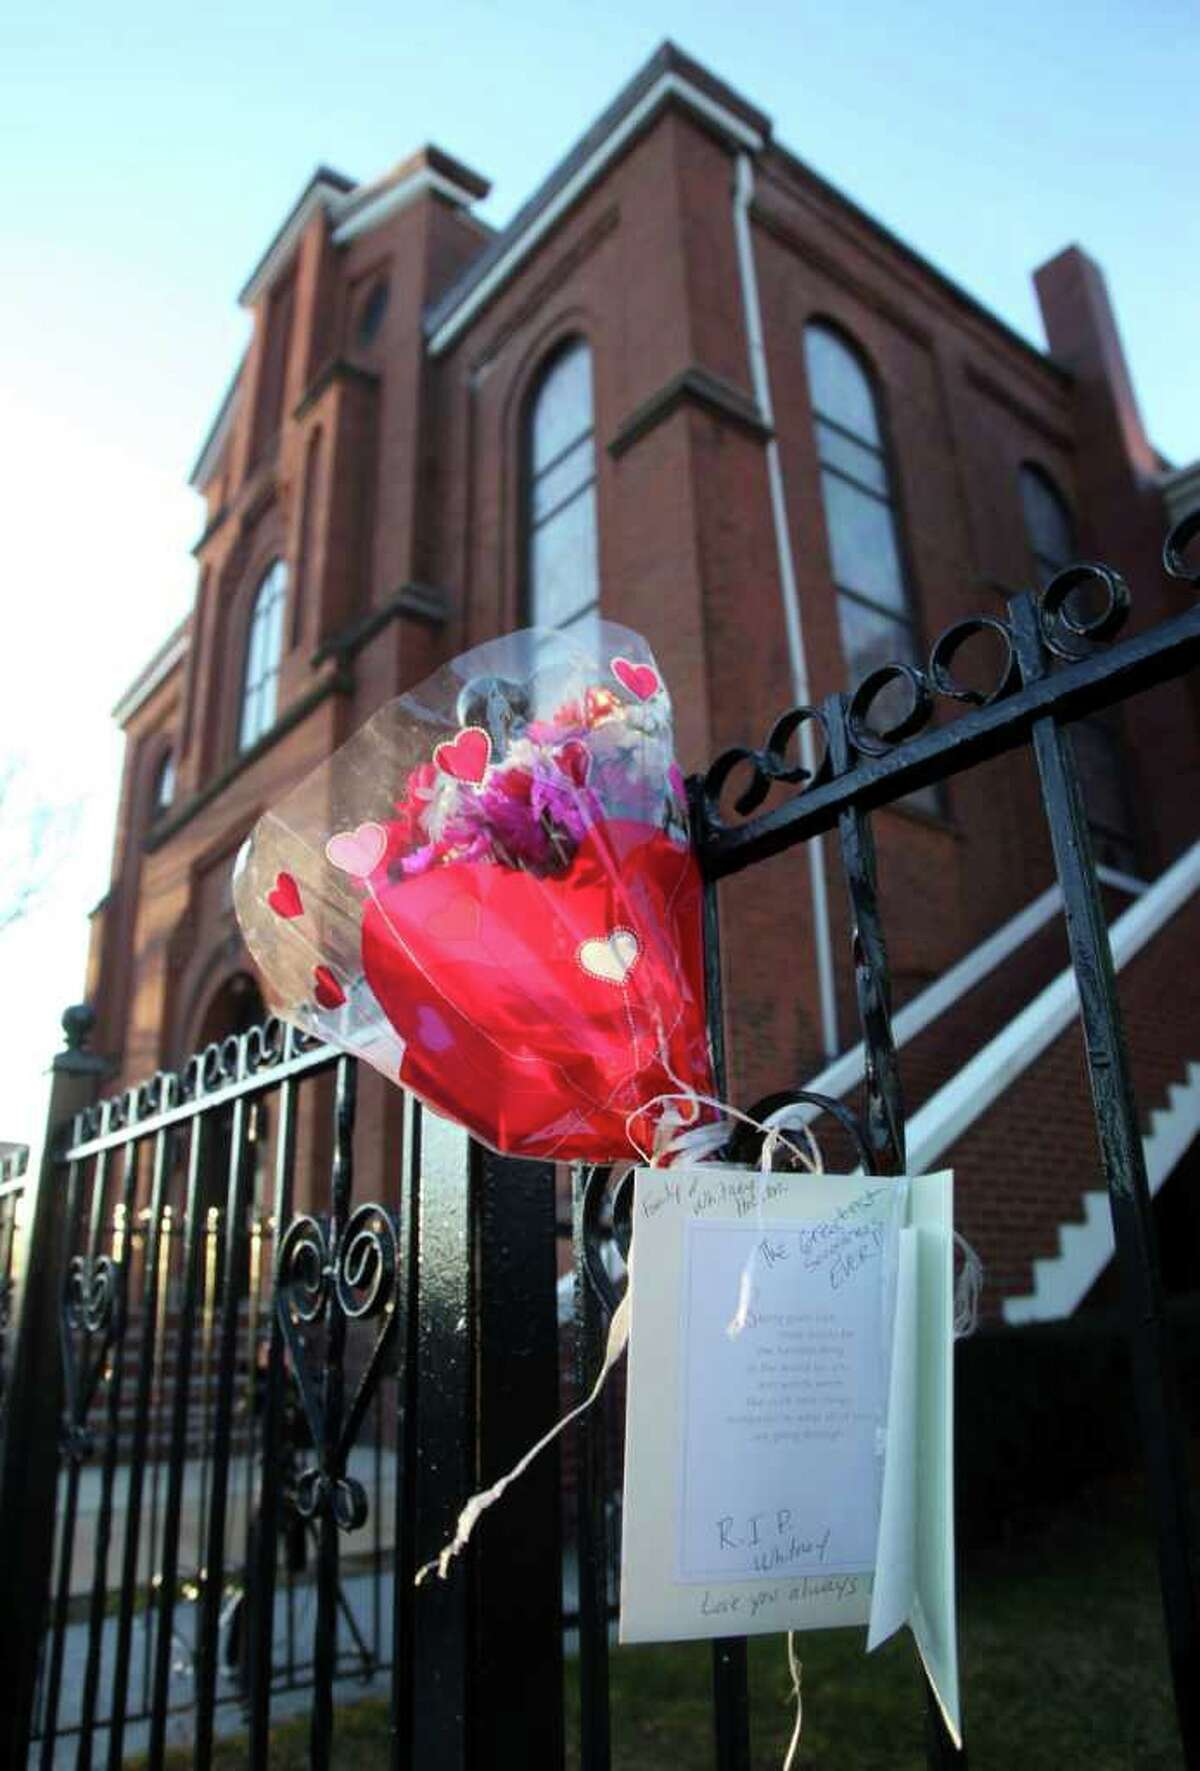 In this file photo of Sunday, Feb. 12, 2012, flowers and a card hang on a fence in front of New Hope Baptist Church in Newark, N.J. Whitney Houston's funeral will be held Saturday, Feb. 18 at the church where she sang in the choir as a girl. Houston, who ruled as pop music's queen until her majestic voice and regal image were ravaged by drug use, erratic behavior and a tumultuous marriage to singer Bobby Brown, died Saturday. She was 48.